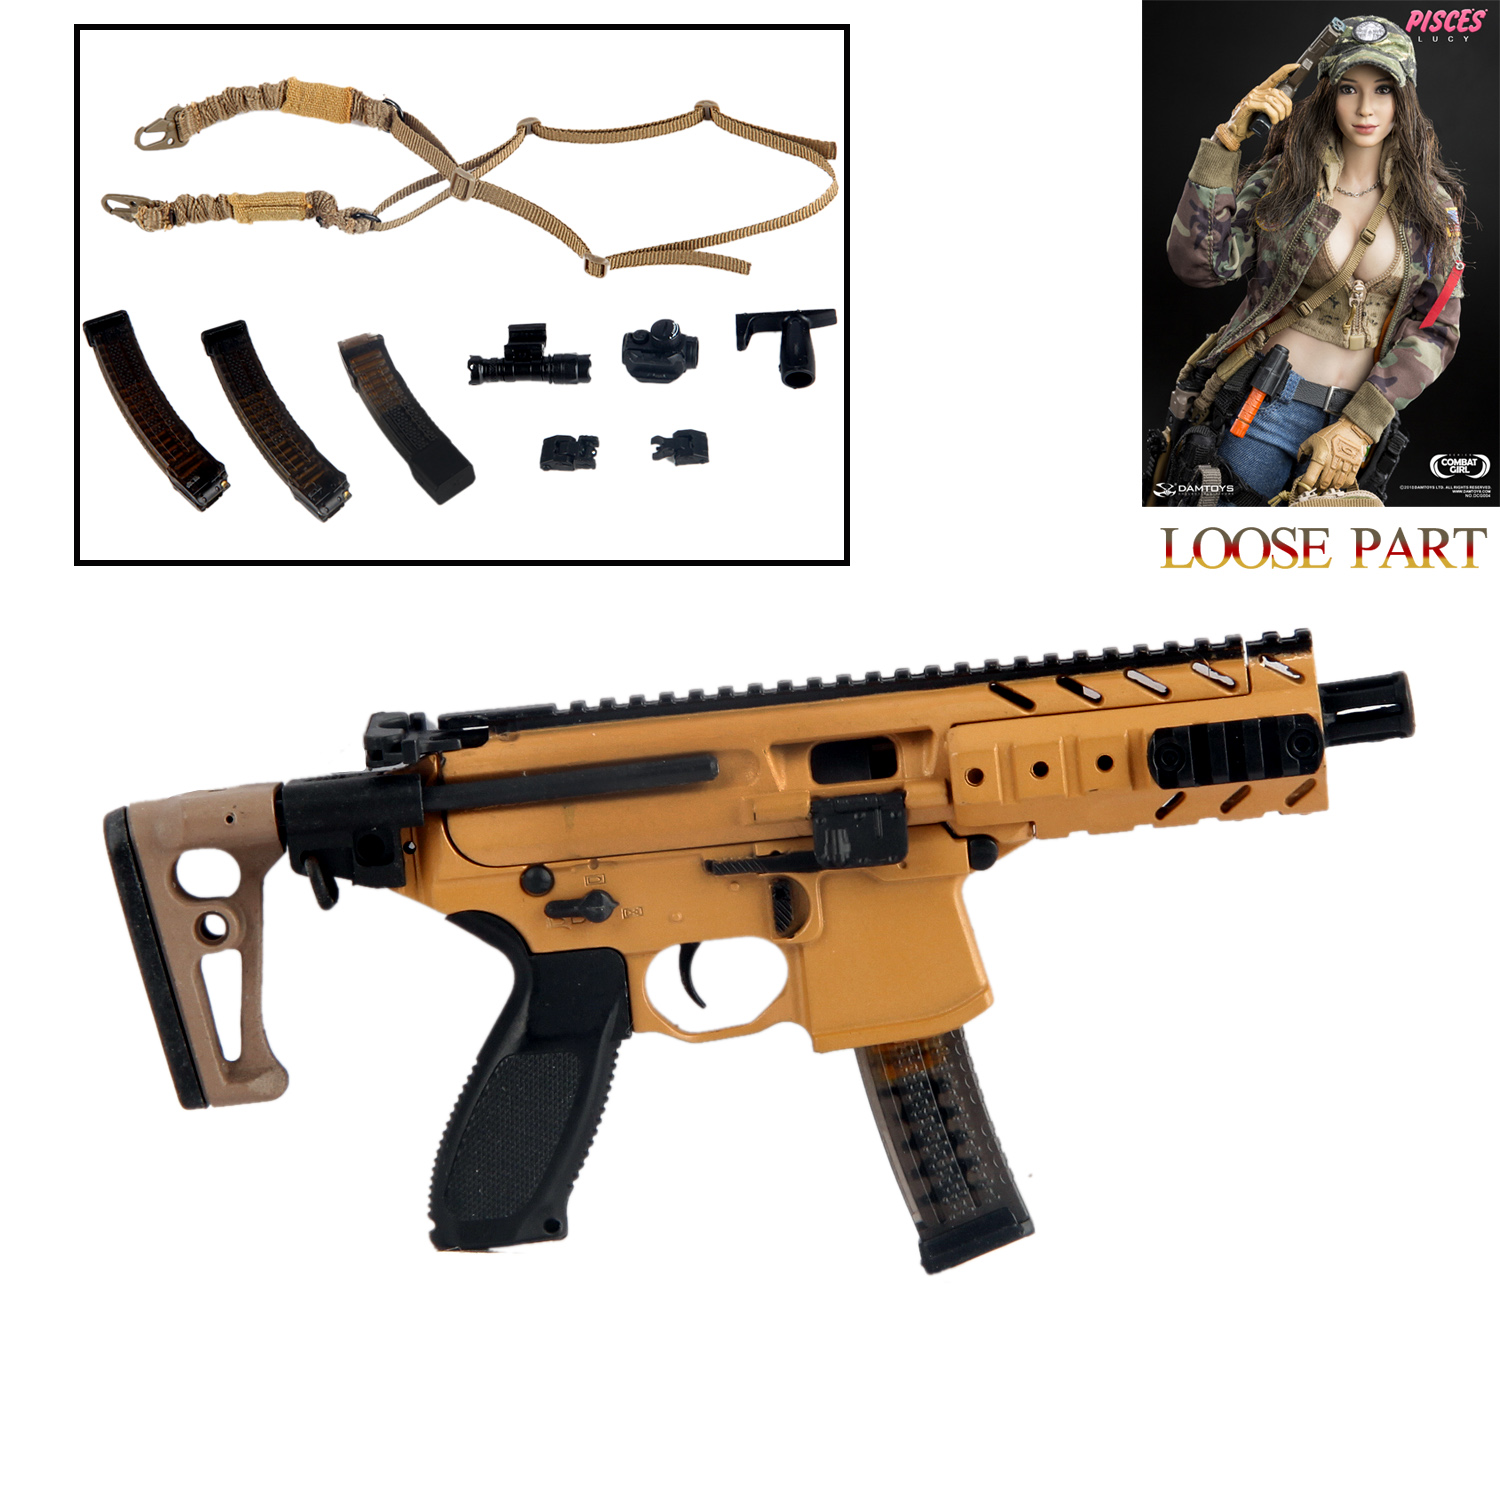 Details about DAMTOYS DCG004 1/6 Scale Combat Girl PISCES Lucy SIG MPX-K  Submachine GUN Rifle